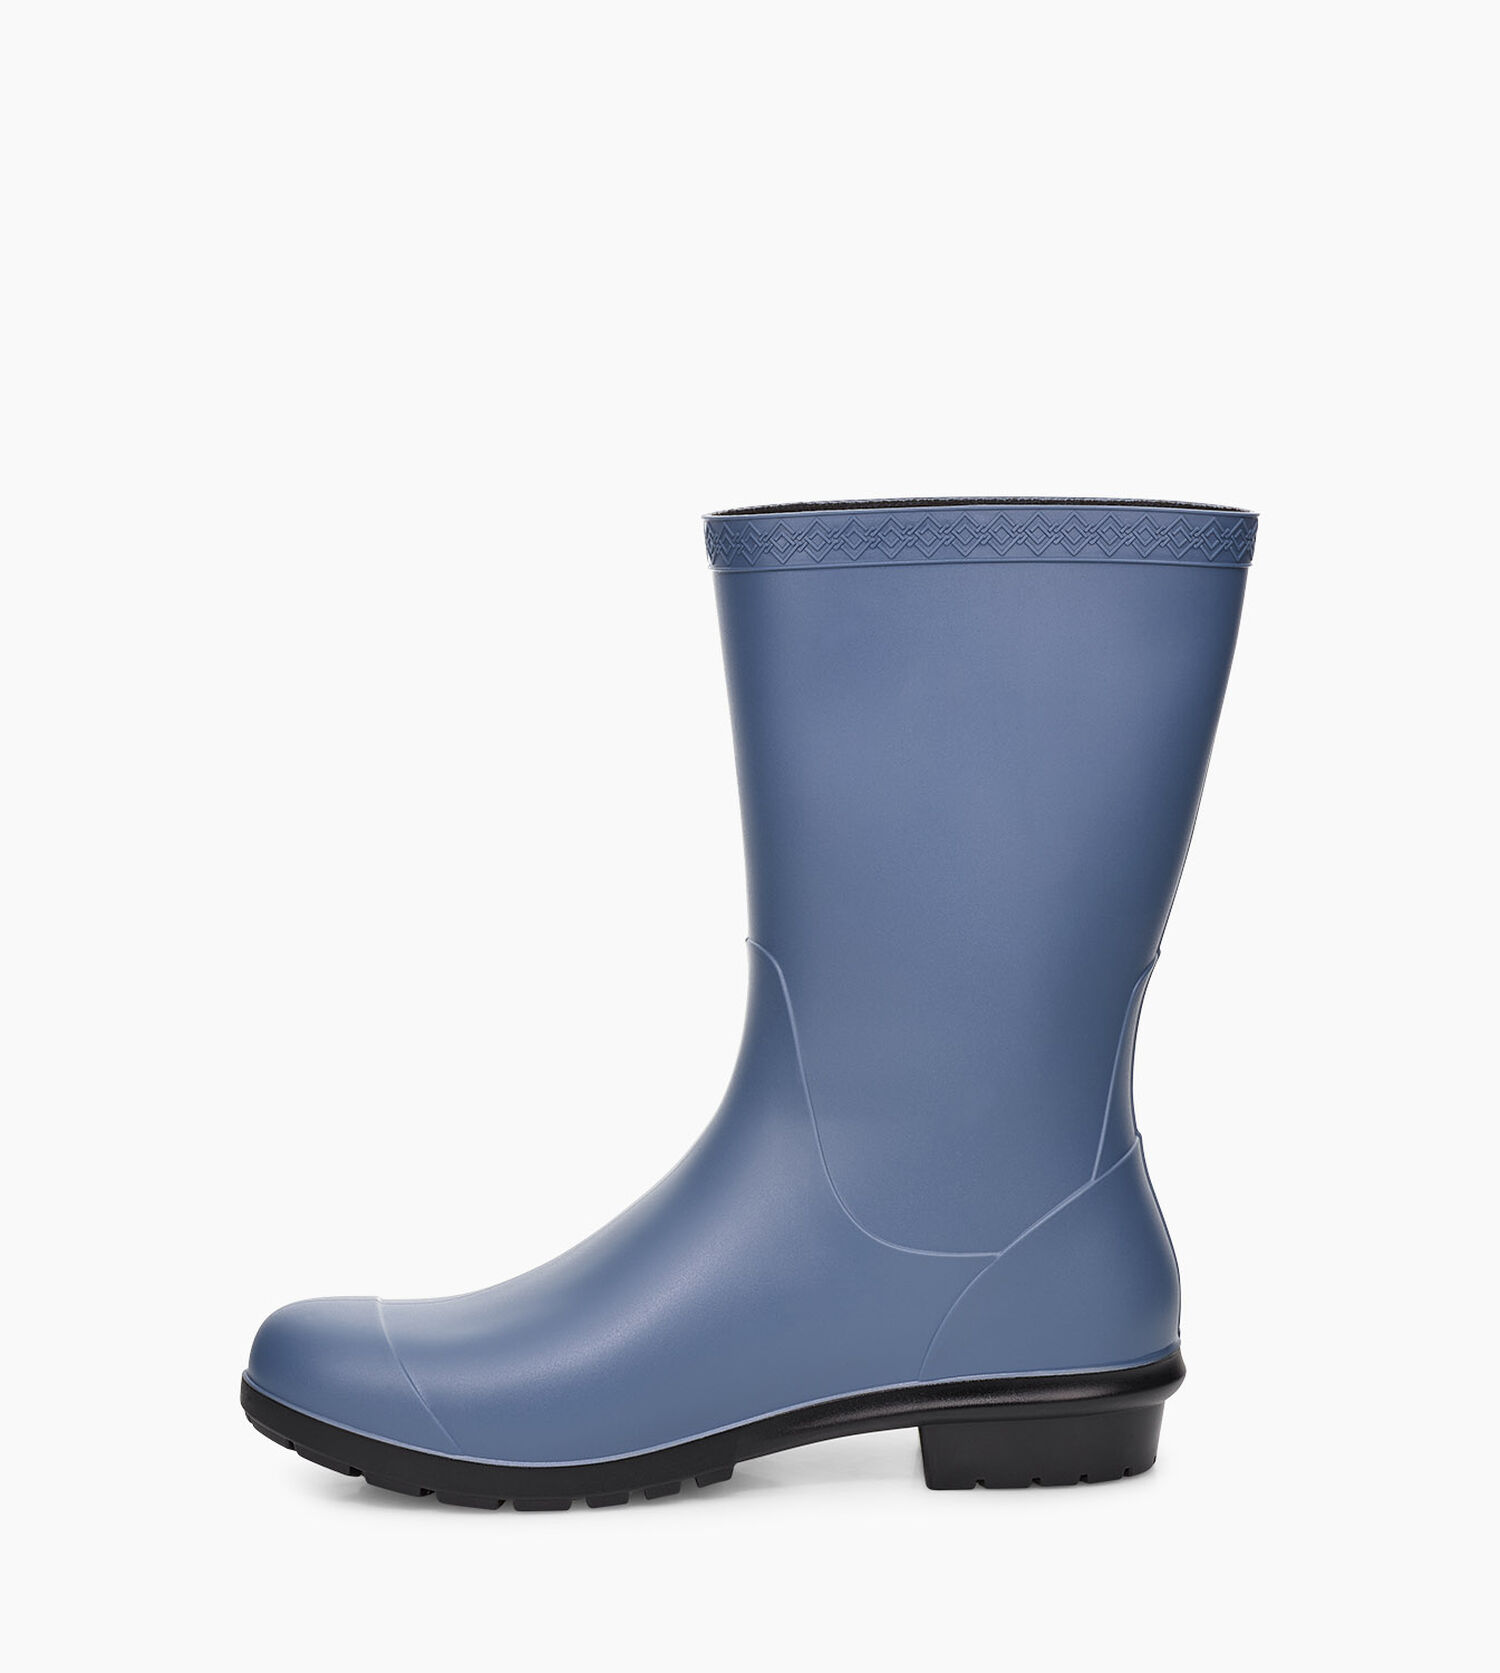 6d9c99d853cd Zoom Sienna Matte Rain Boot - Image 3 of 6